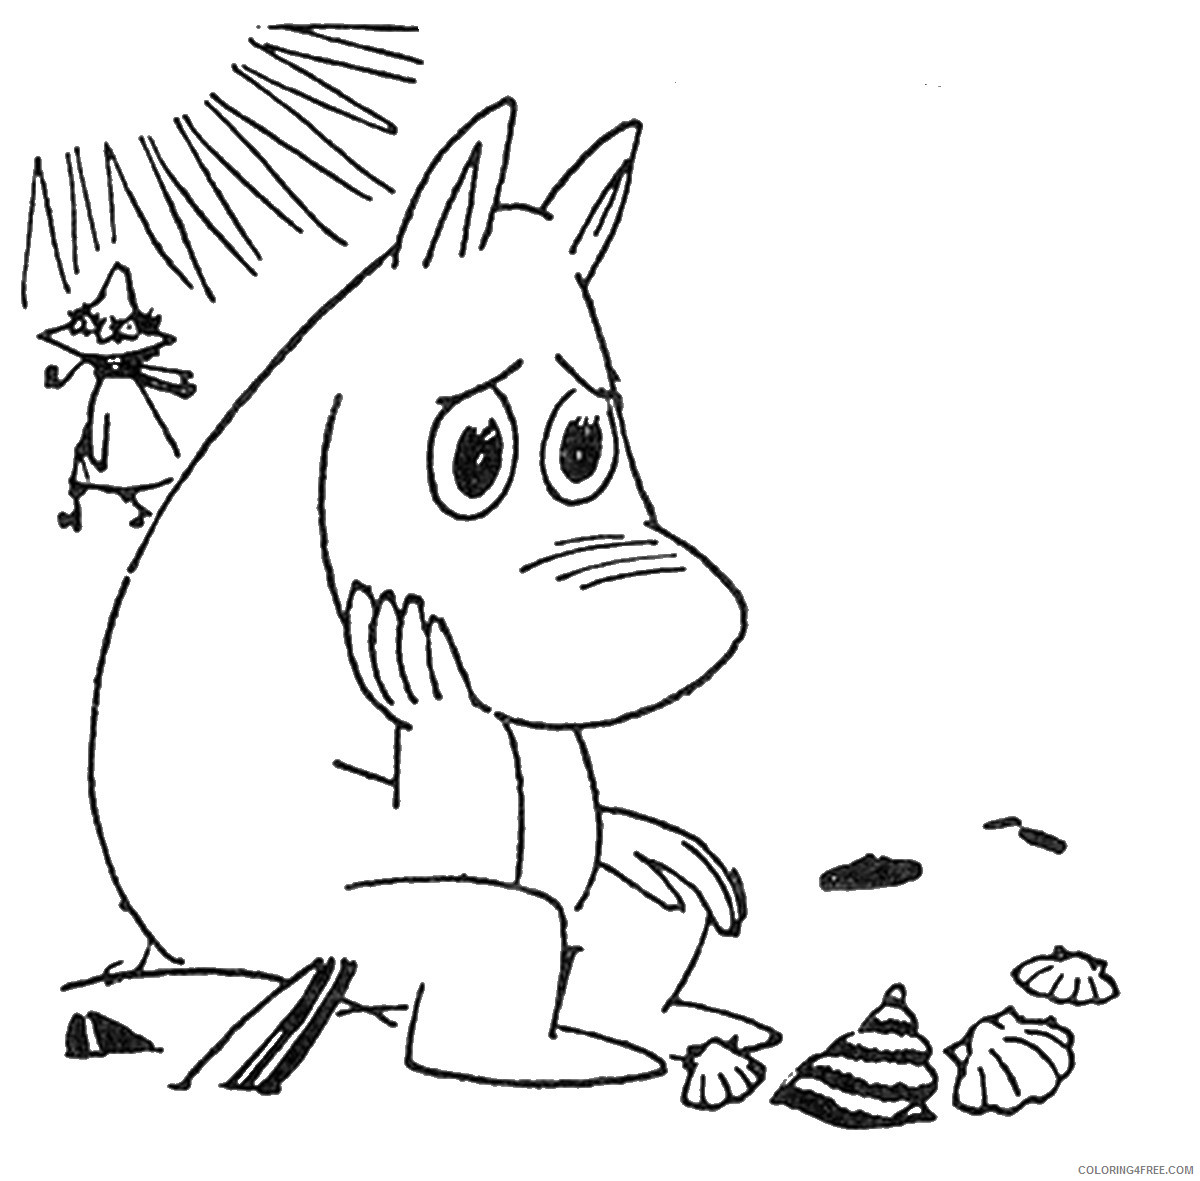 The Moomins Coloring Pages Cartoons moomins_cl_03 Printable 2020 6487 Coloring4free